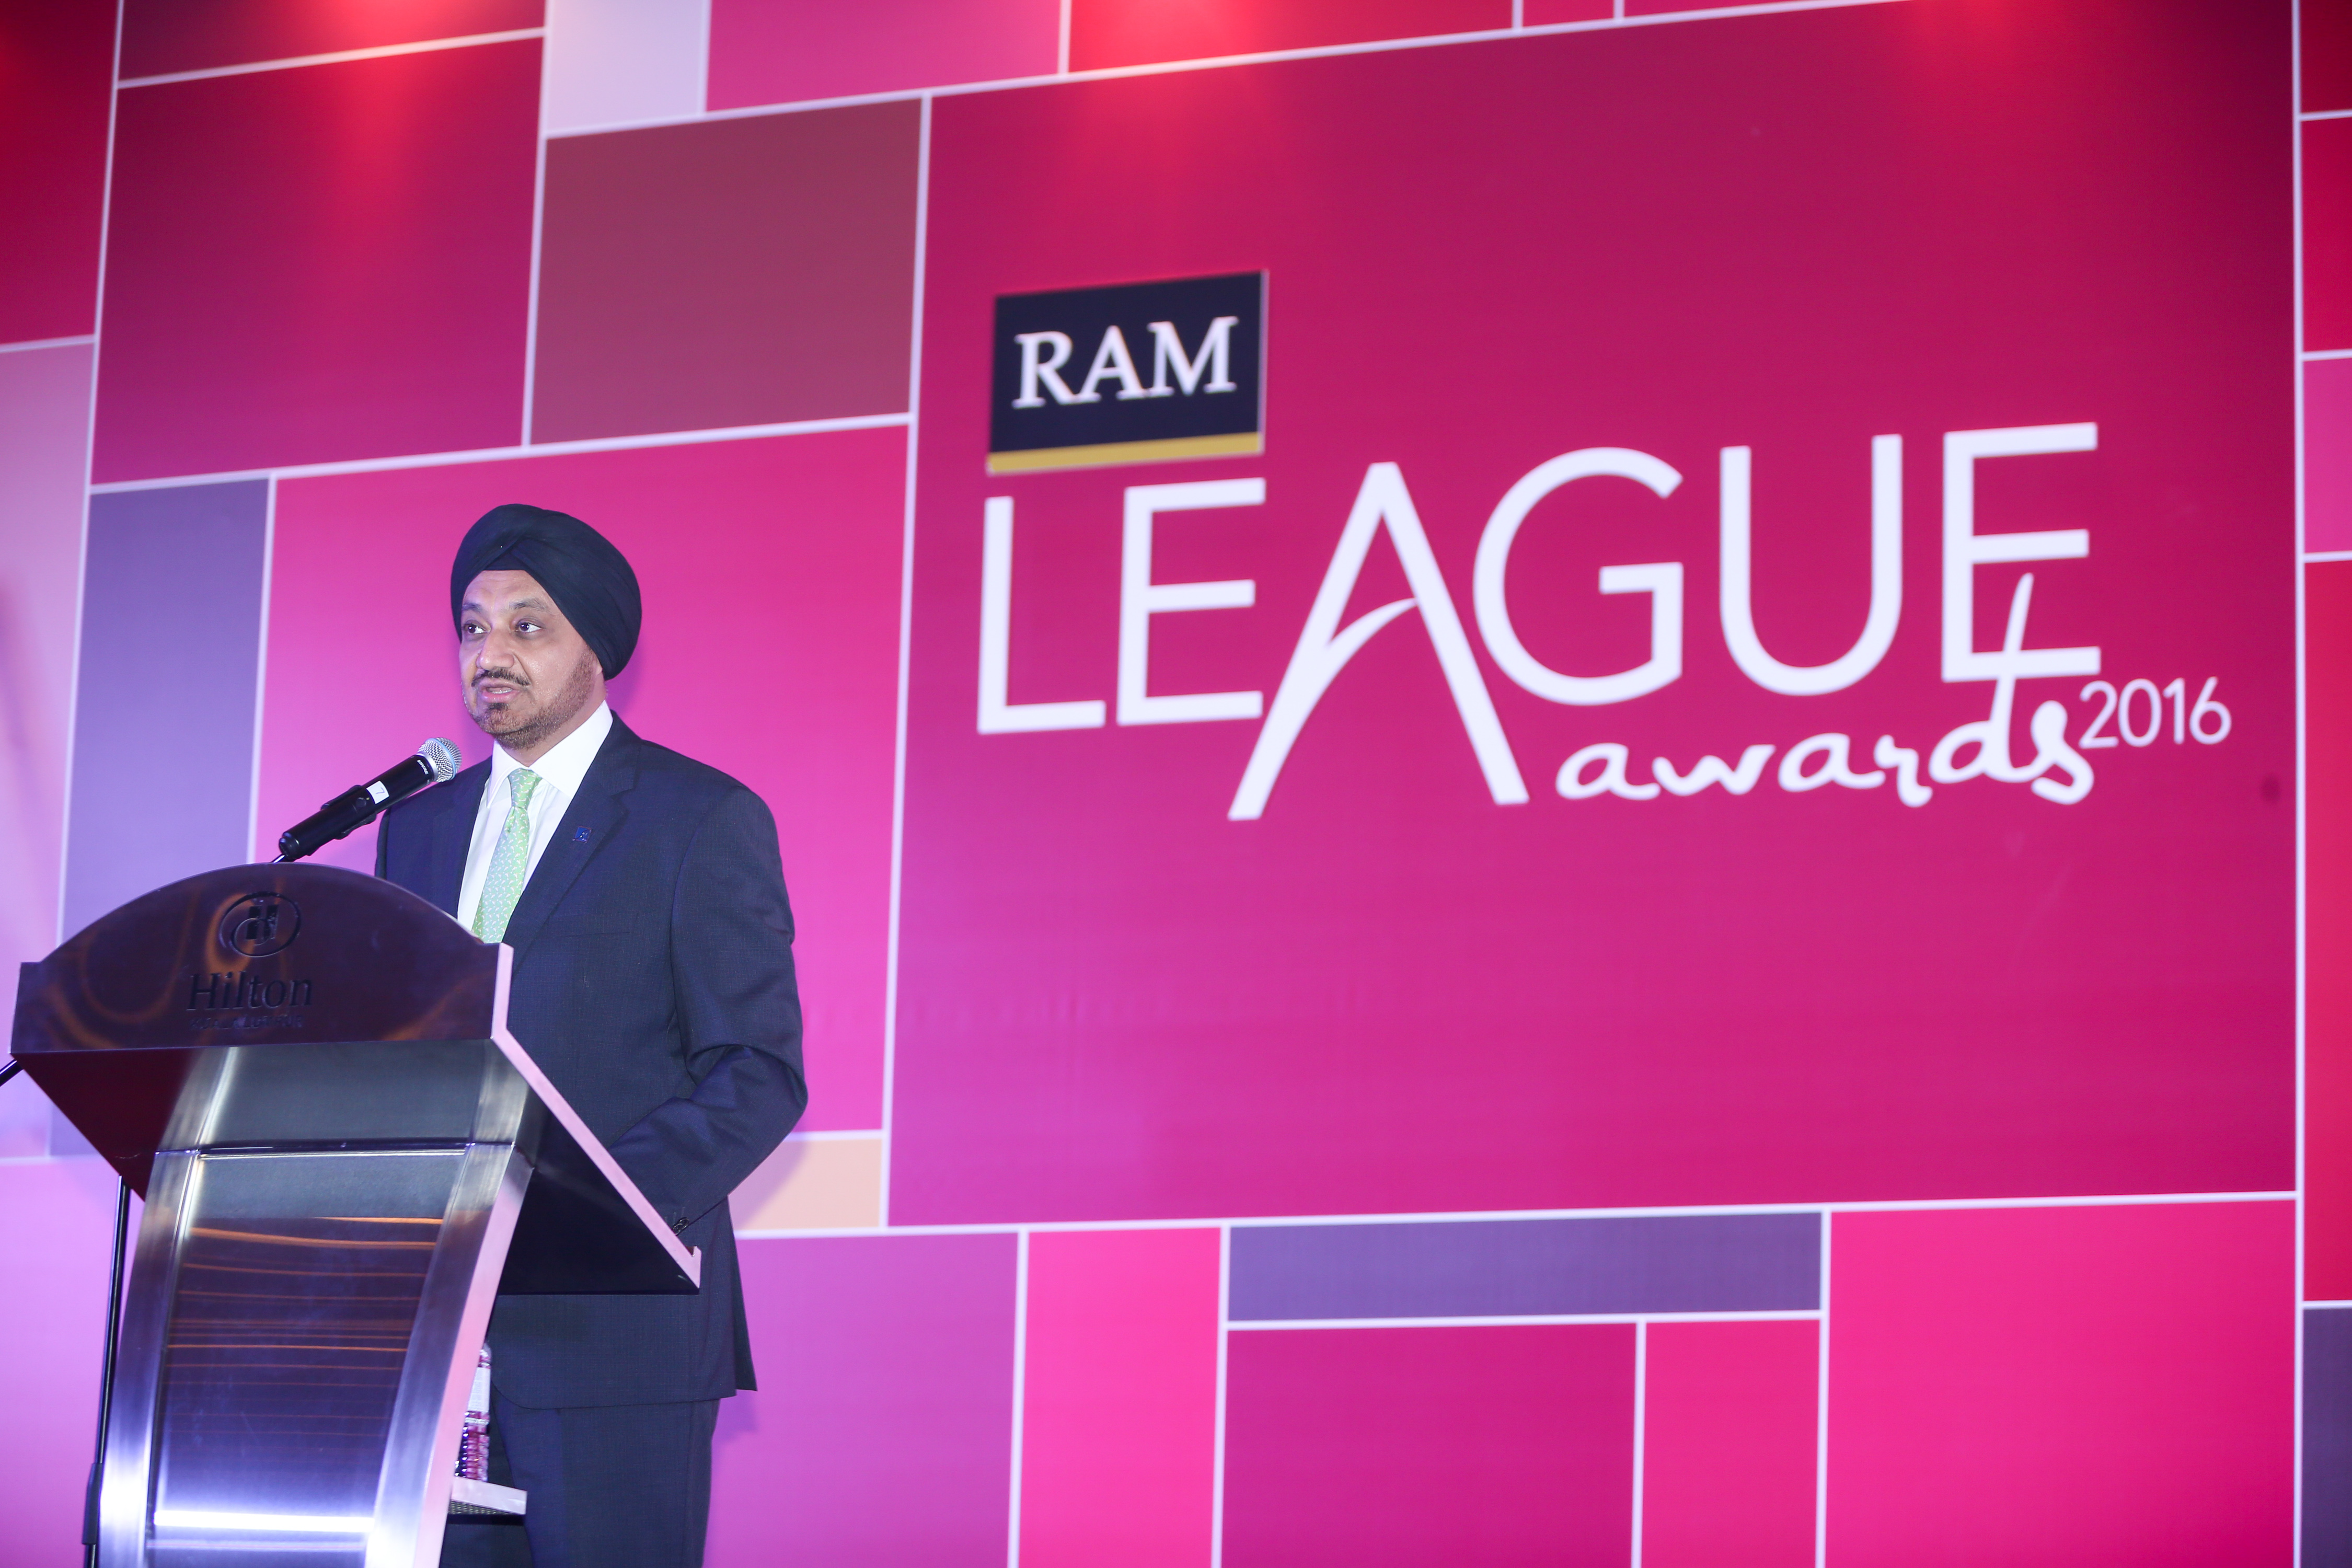 RAM League Awards 2016